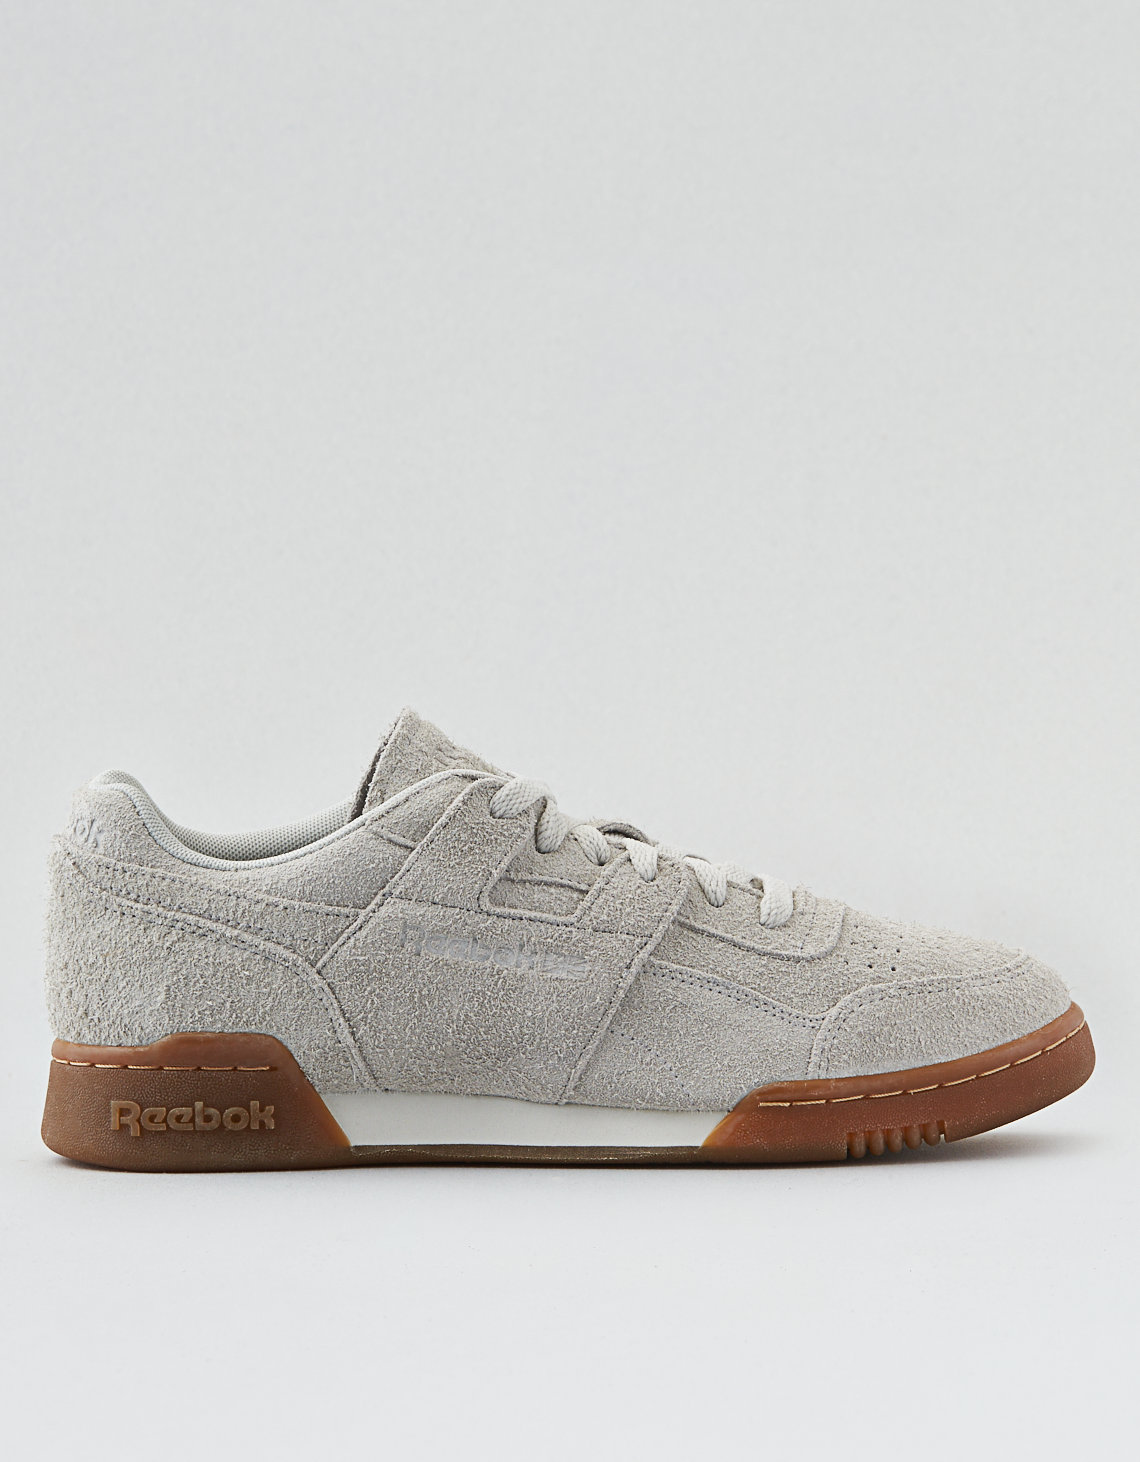 ad402cea14a Reebok Workout Plus MU Sneaker. Placeholder image. Product Image